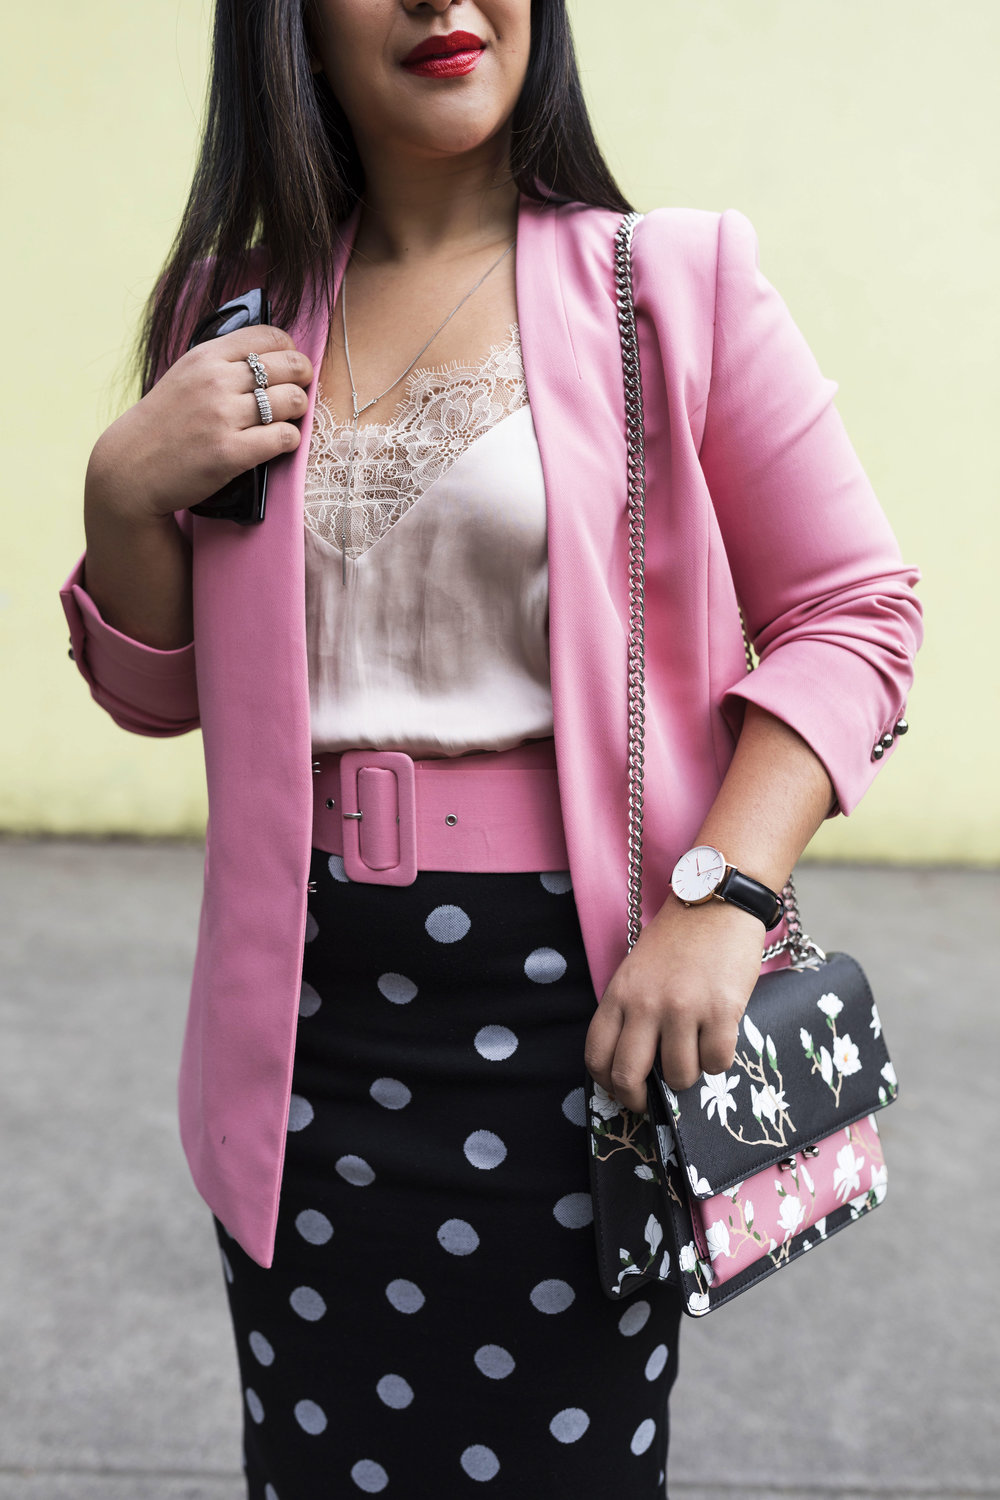 Krity S x Polka Dot and Pink Work Outfit8.jpg